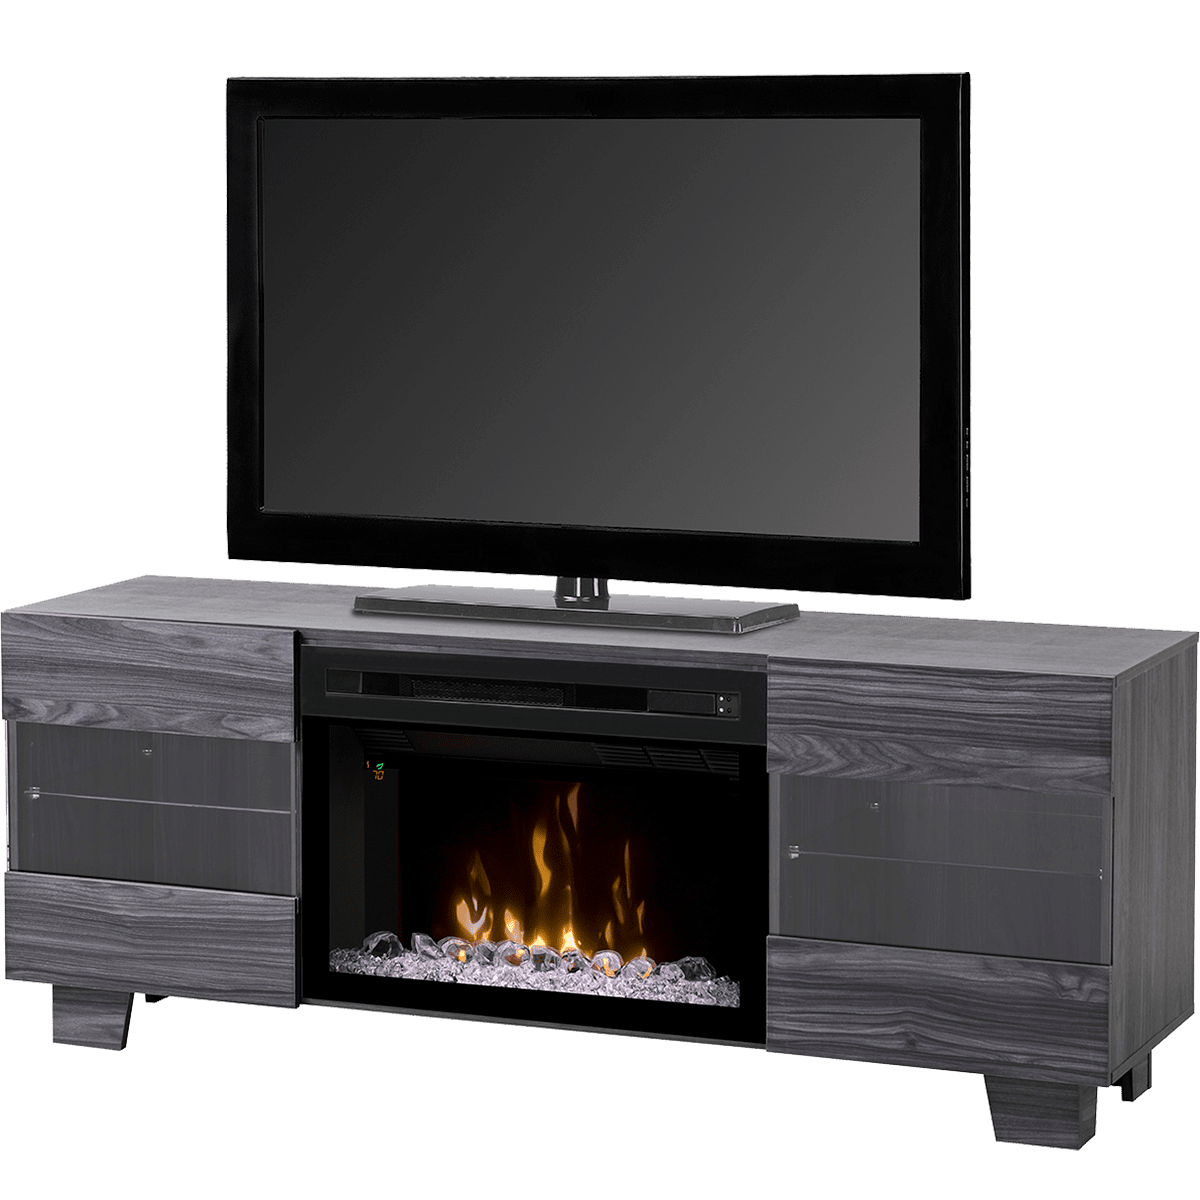 The Dimplex Max Media Console Electric Fireplace offers 120v of contemporary style and year-round comfort. Shop Sylvane for expert advice and free shipping!